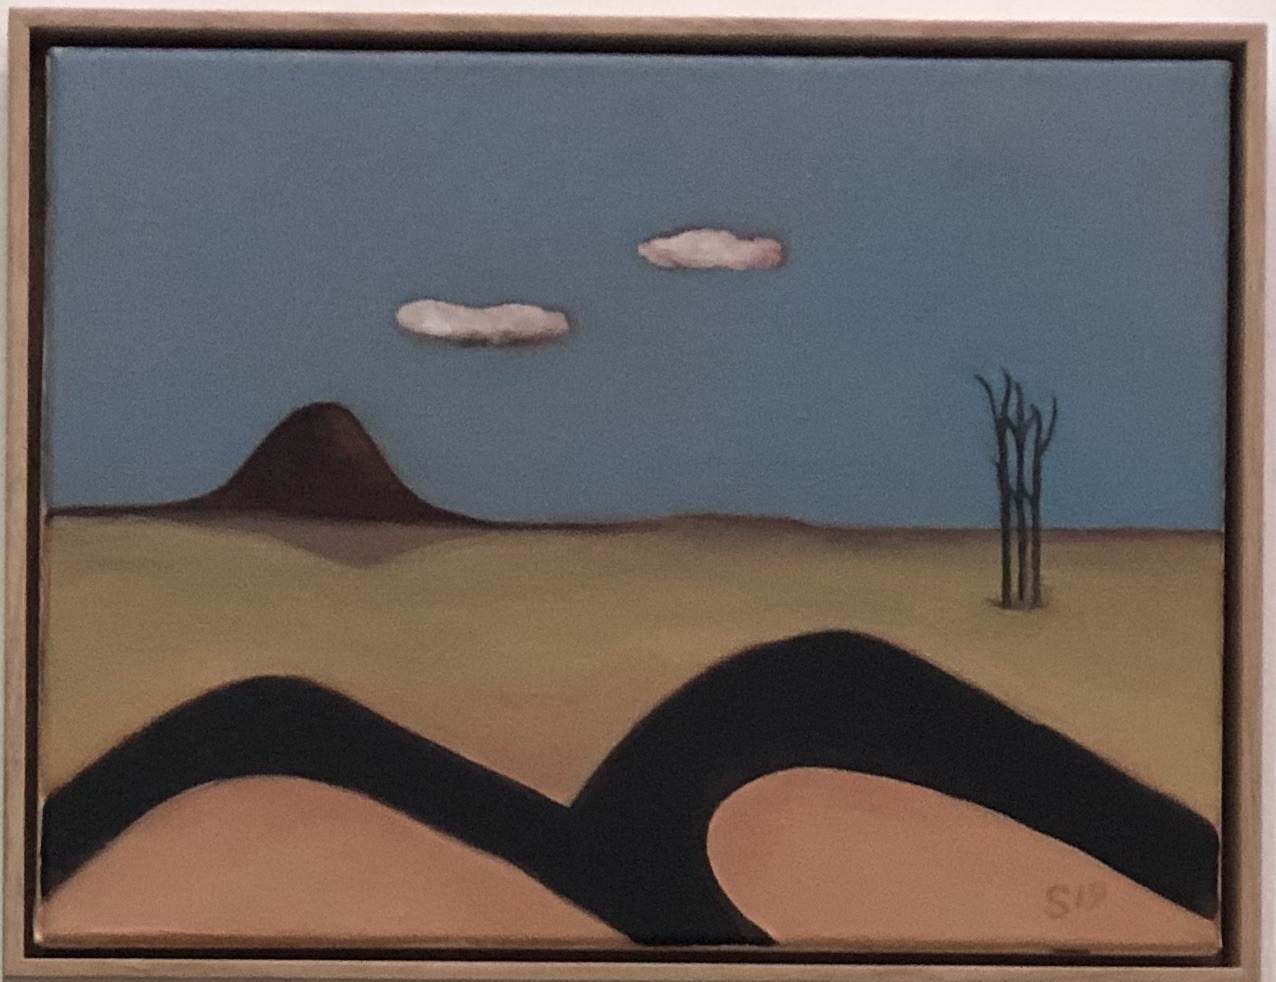 18. Malcolm Sands The Road Through Bylong 2019 oil on canvas 33 x 43.5cm framed $450.00